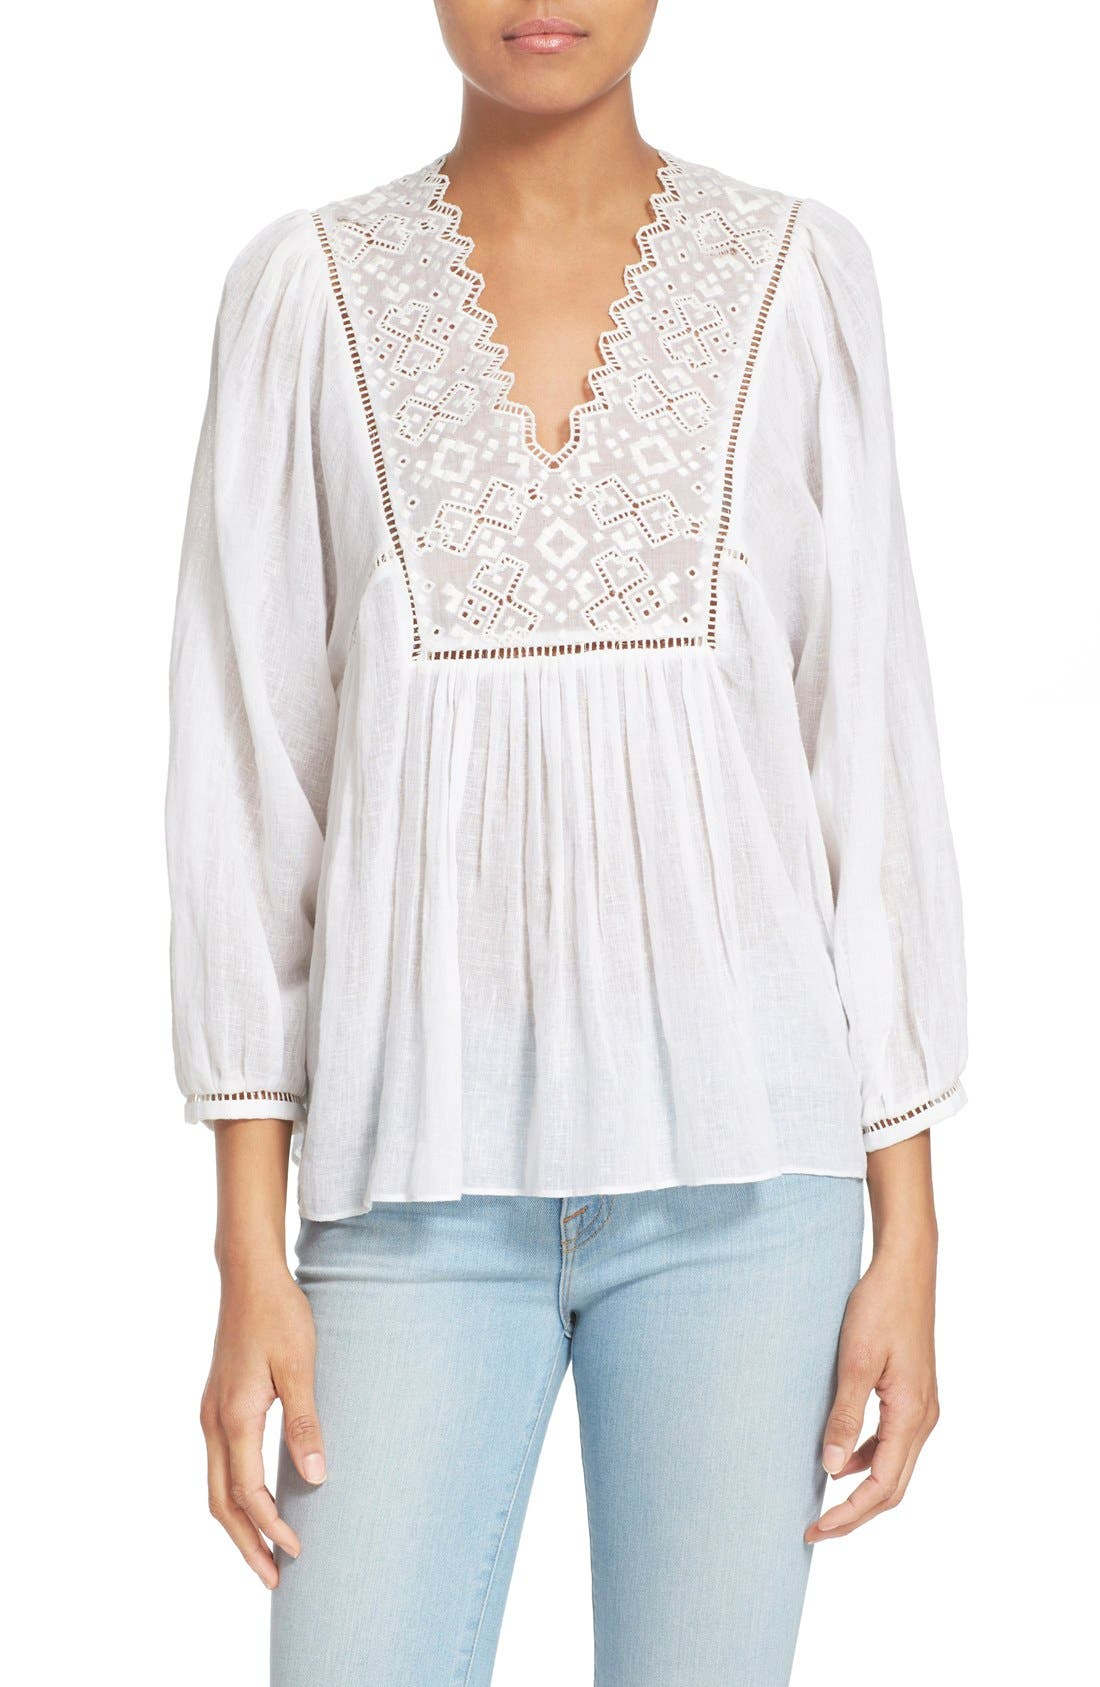 Alternate Image 1 Selected - Rebecca Taylor Lace Trim Woven Peasant Top